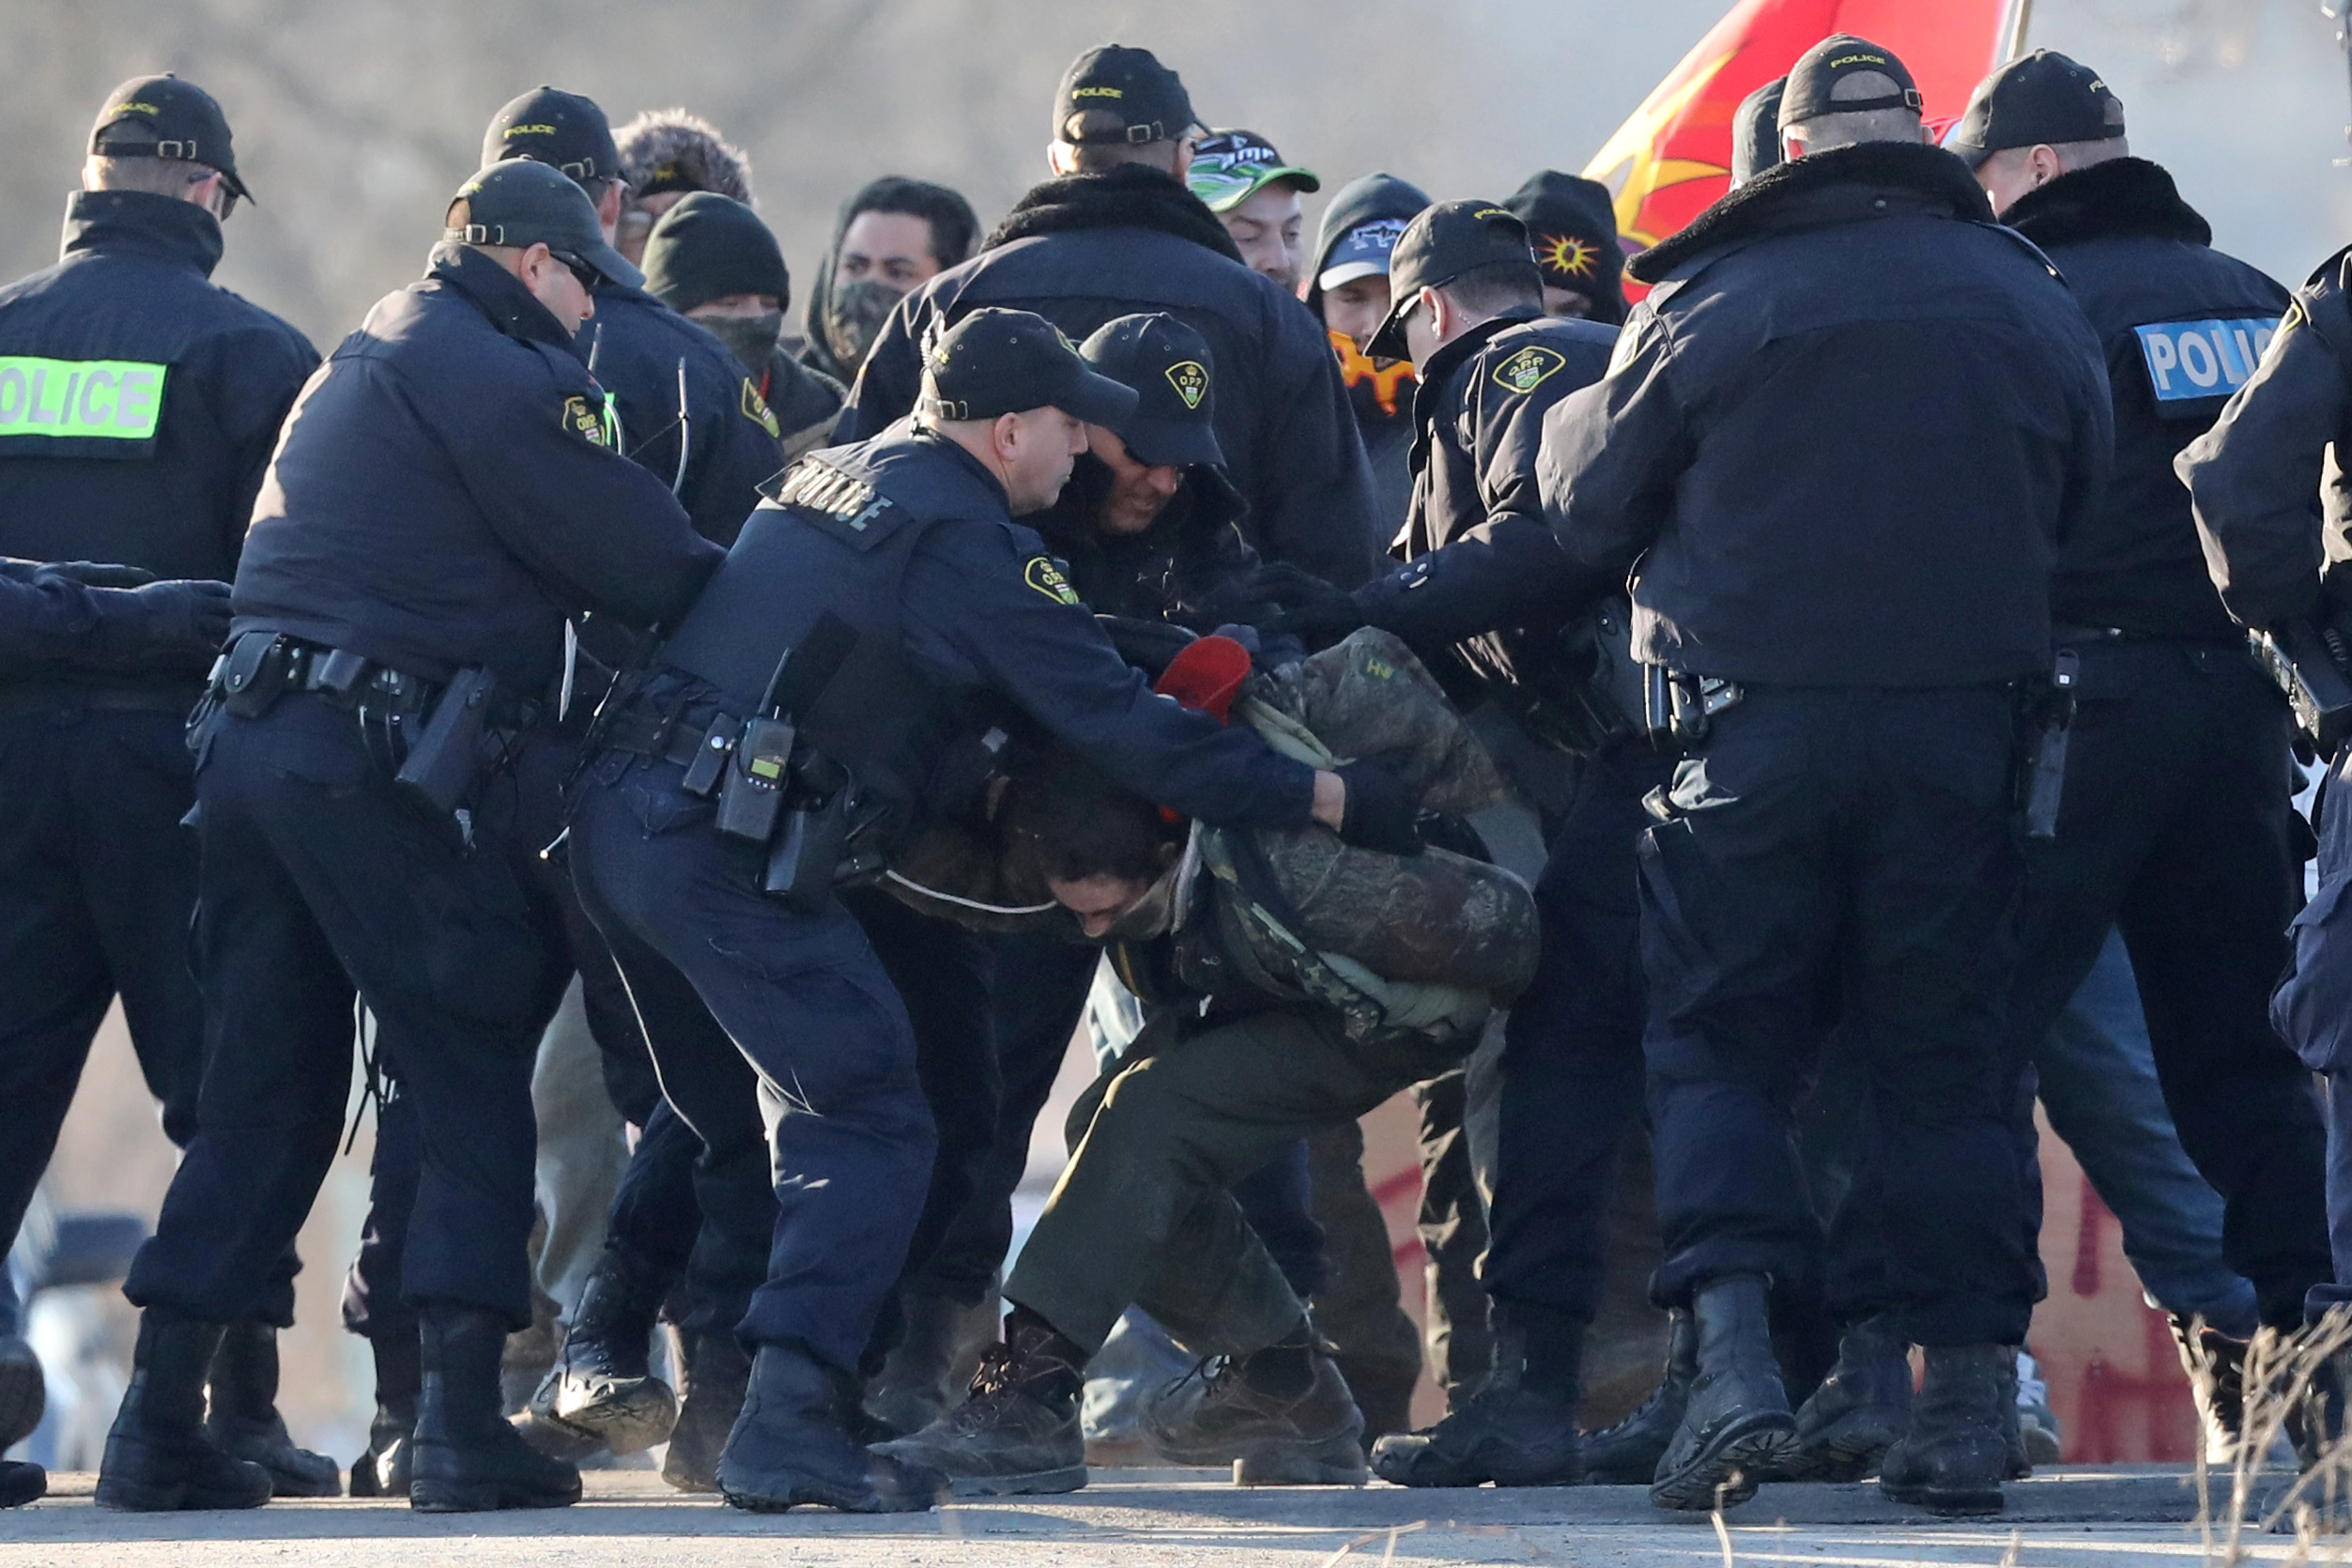 Police officers make an arrest during a raid on a Tyendinaga Mohawk Territory camp next to a railway crossing in Tyendinaga, Ontario, Canada February 24, 2020. Picture taken Feb. 24, 2020. REUTERS/Chris Helgren